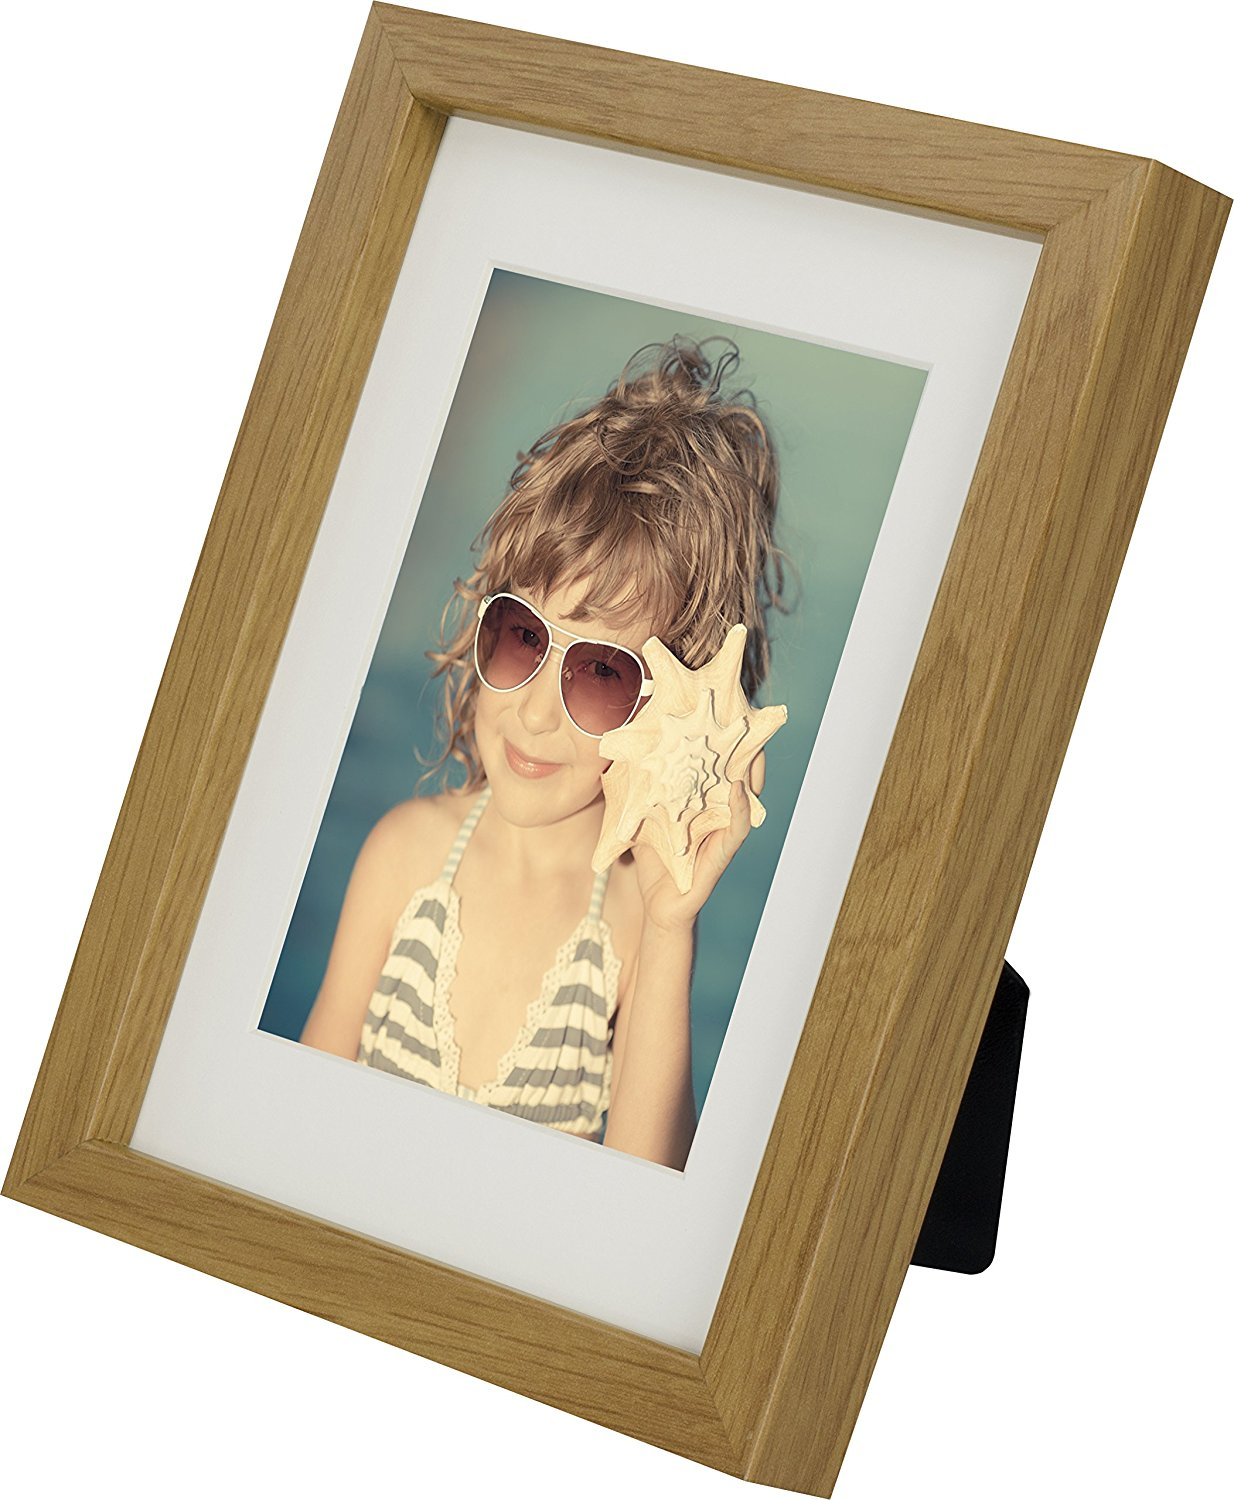 5 x 7-Inch Picture Photo Frame with mount for 4 x 6-Inch photo, OAK ...